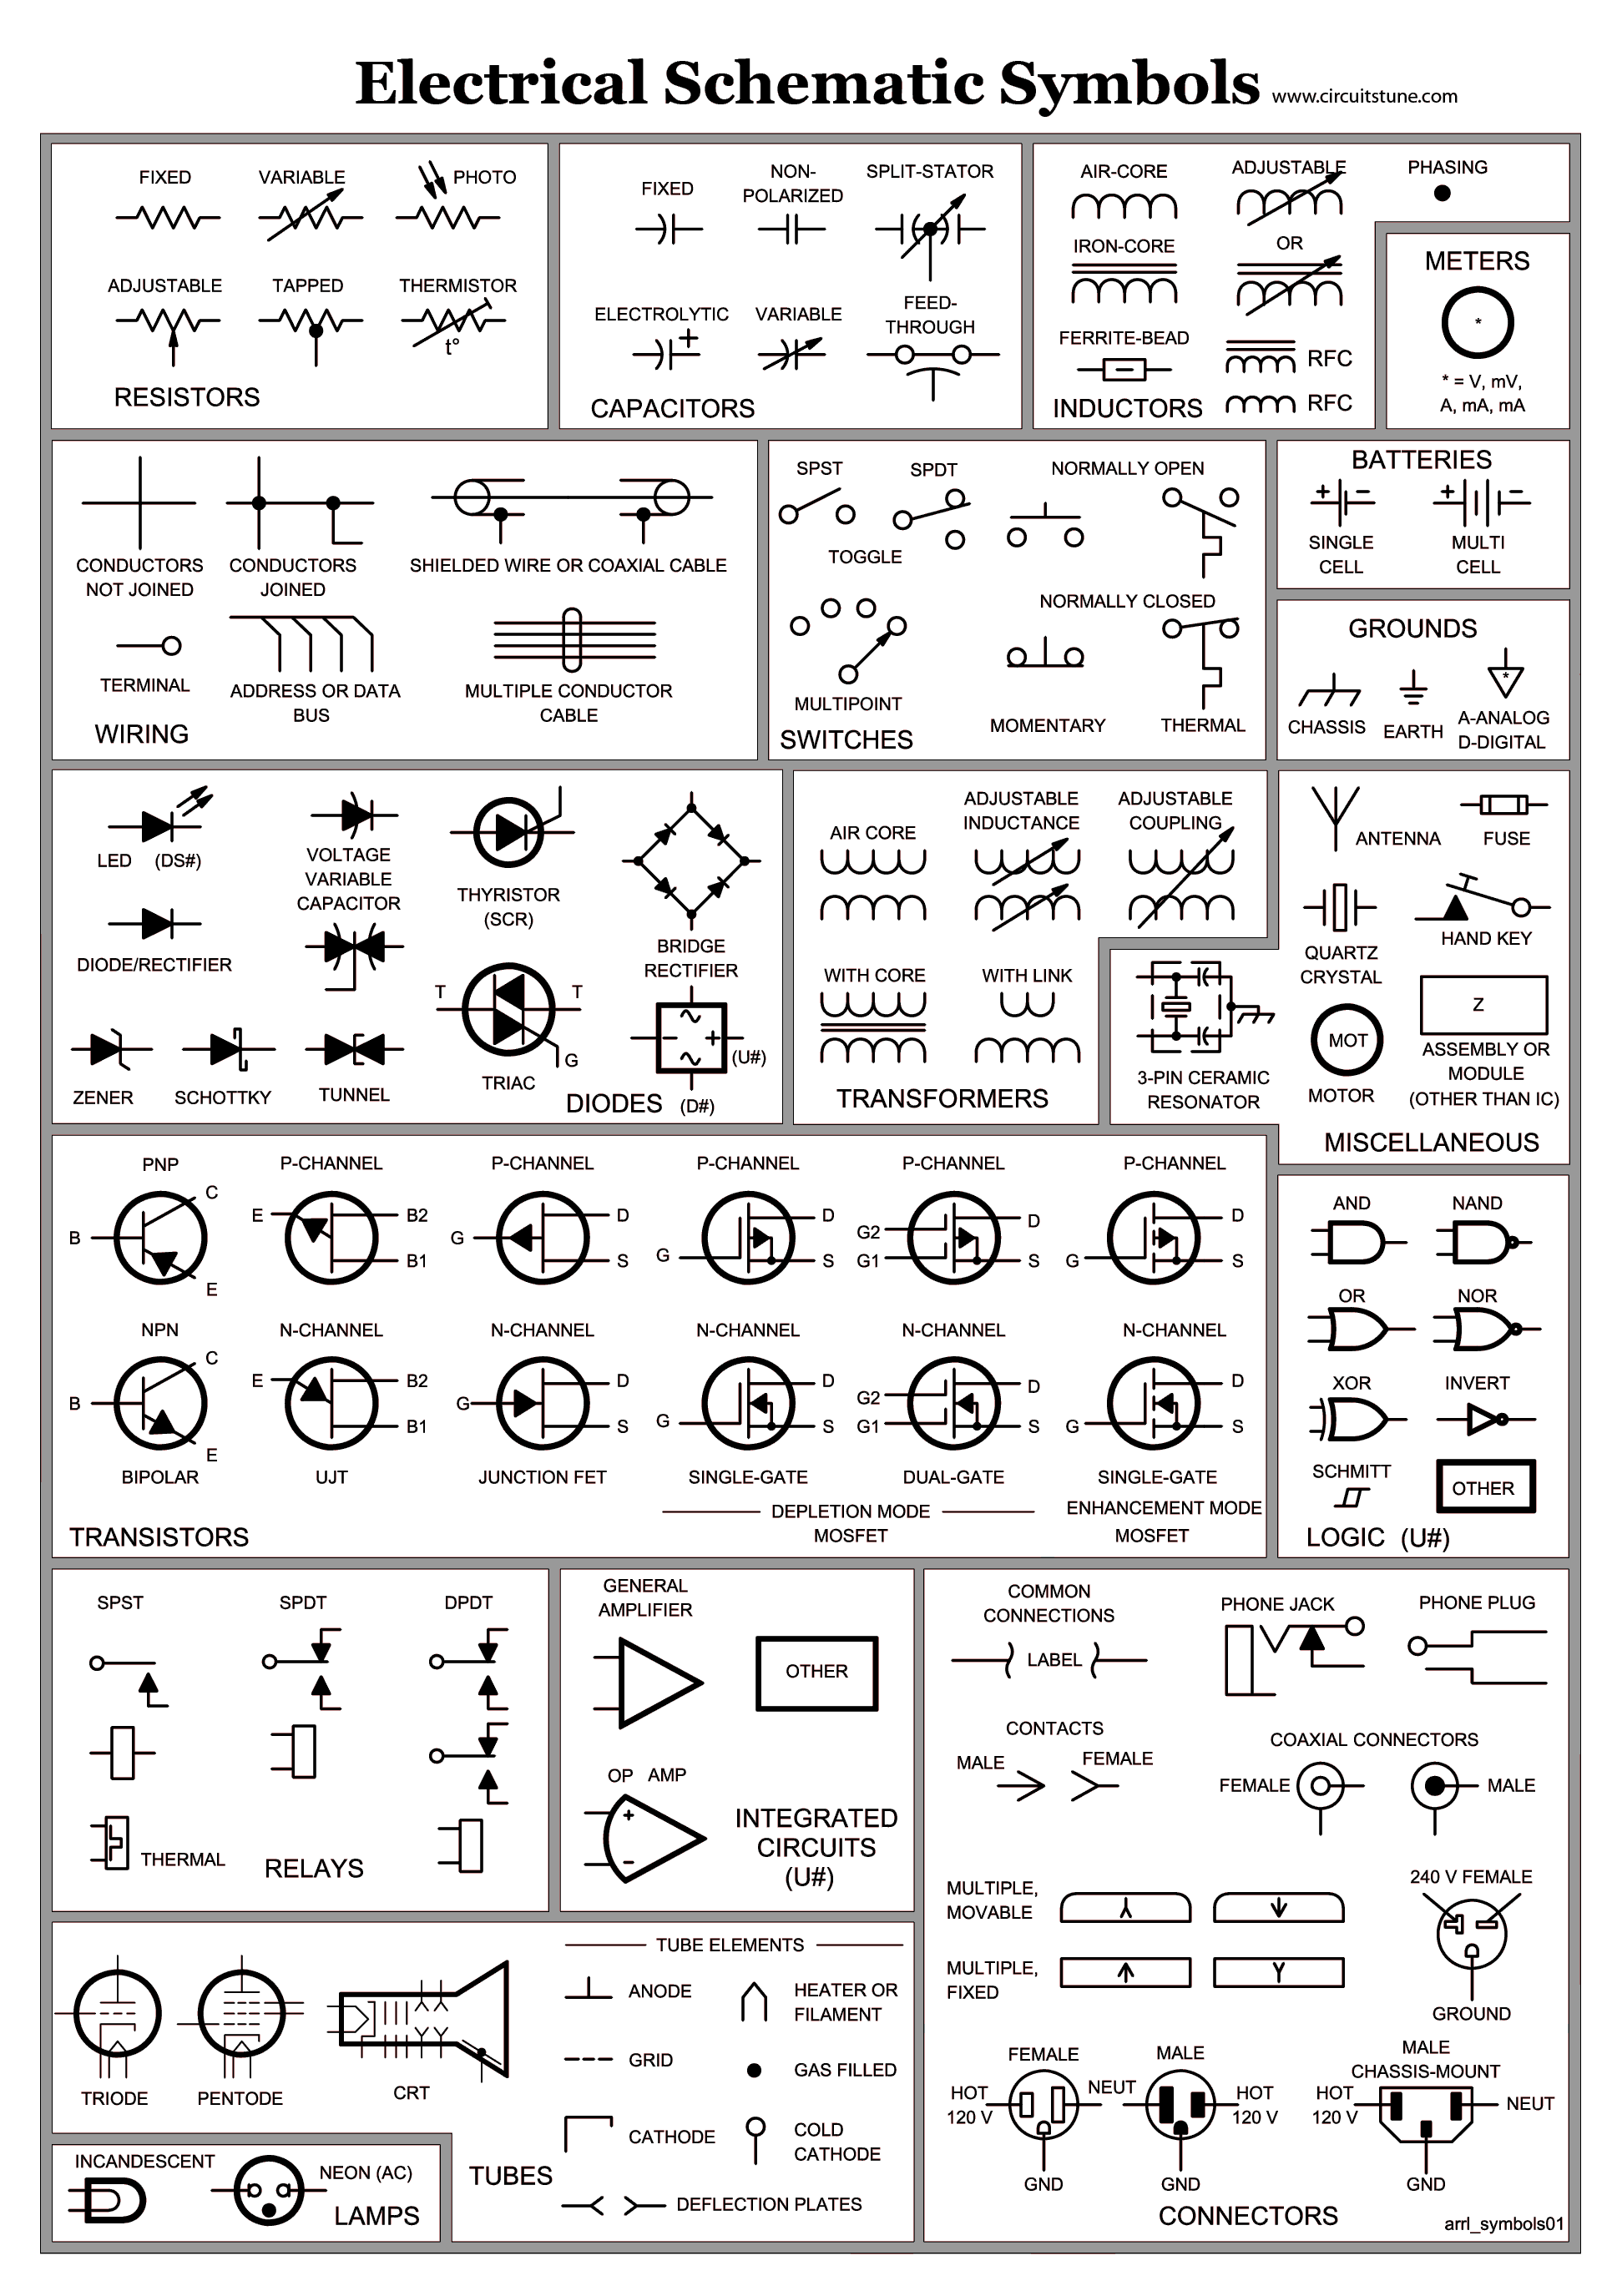 electrical schematic symbols wire diagram symbols automotive wiring rh pinterest com Home Wiring Diagrams Wiring Diagram Examples